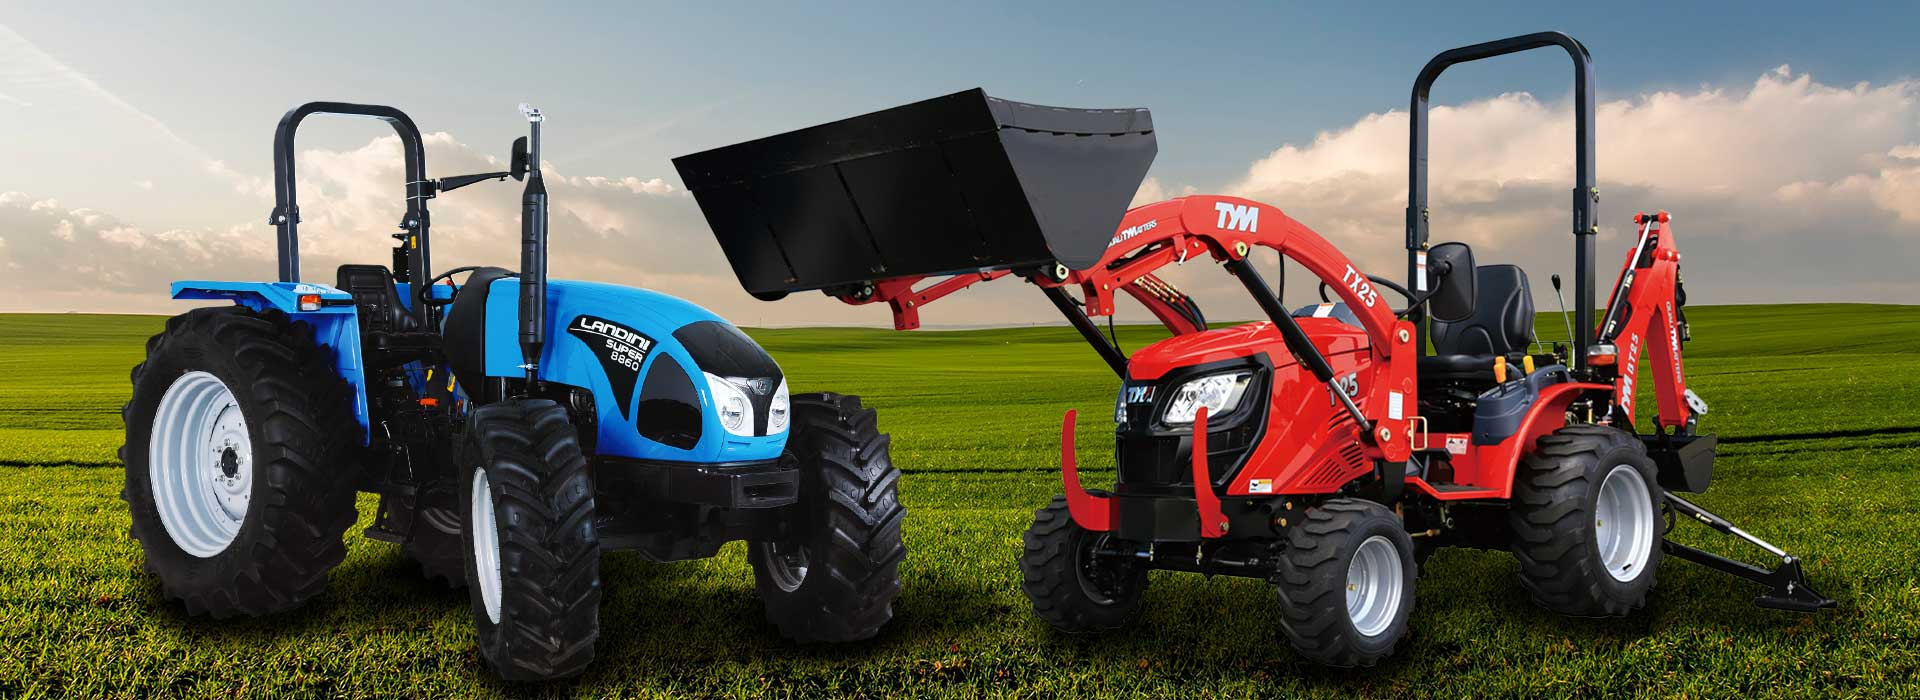 sales banner   TISCA   Tractor Implement Supply Company of Australia